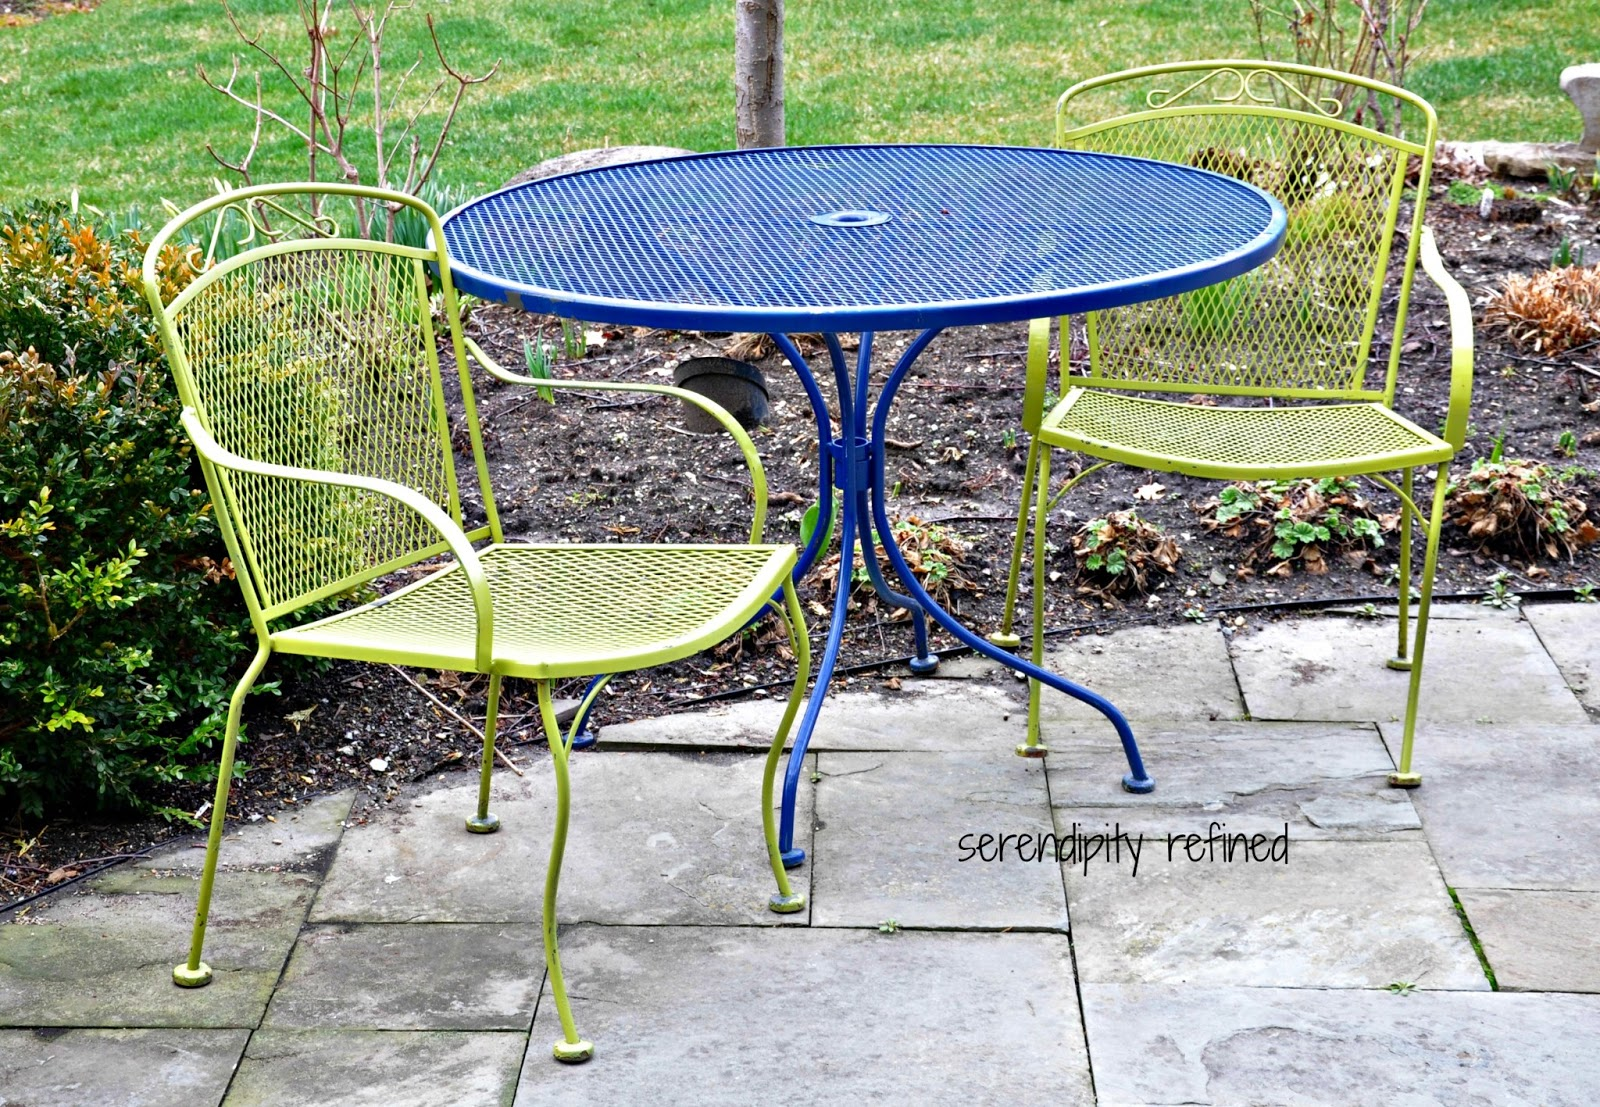 Serendipity Refined Blog  Wicker and Wrought Iron Patio Furniture     Spray painted brightly colored Wrought Iron Patio furniture makeover